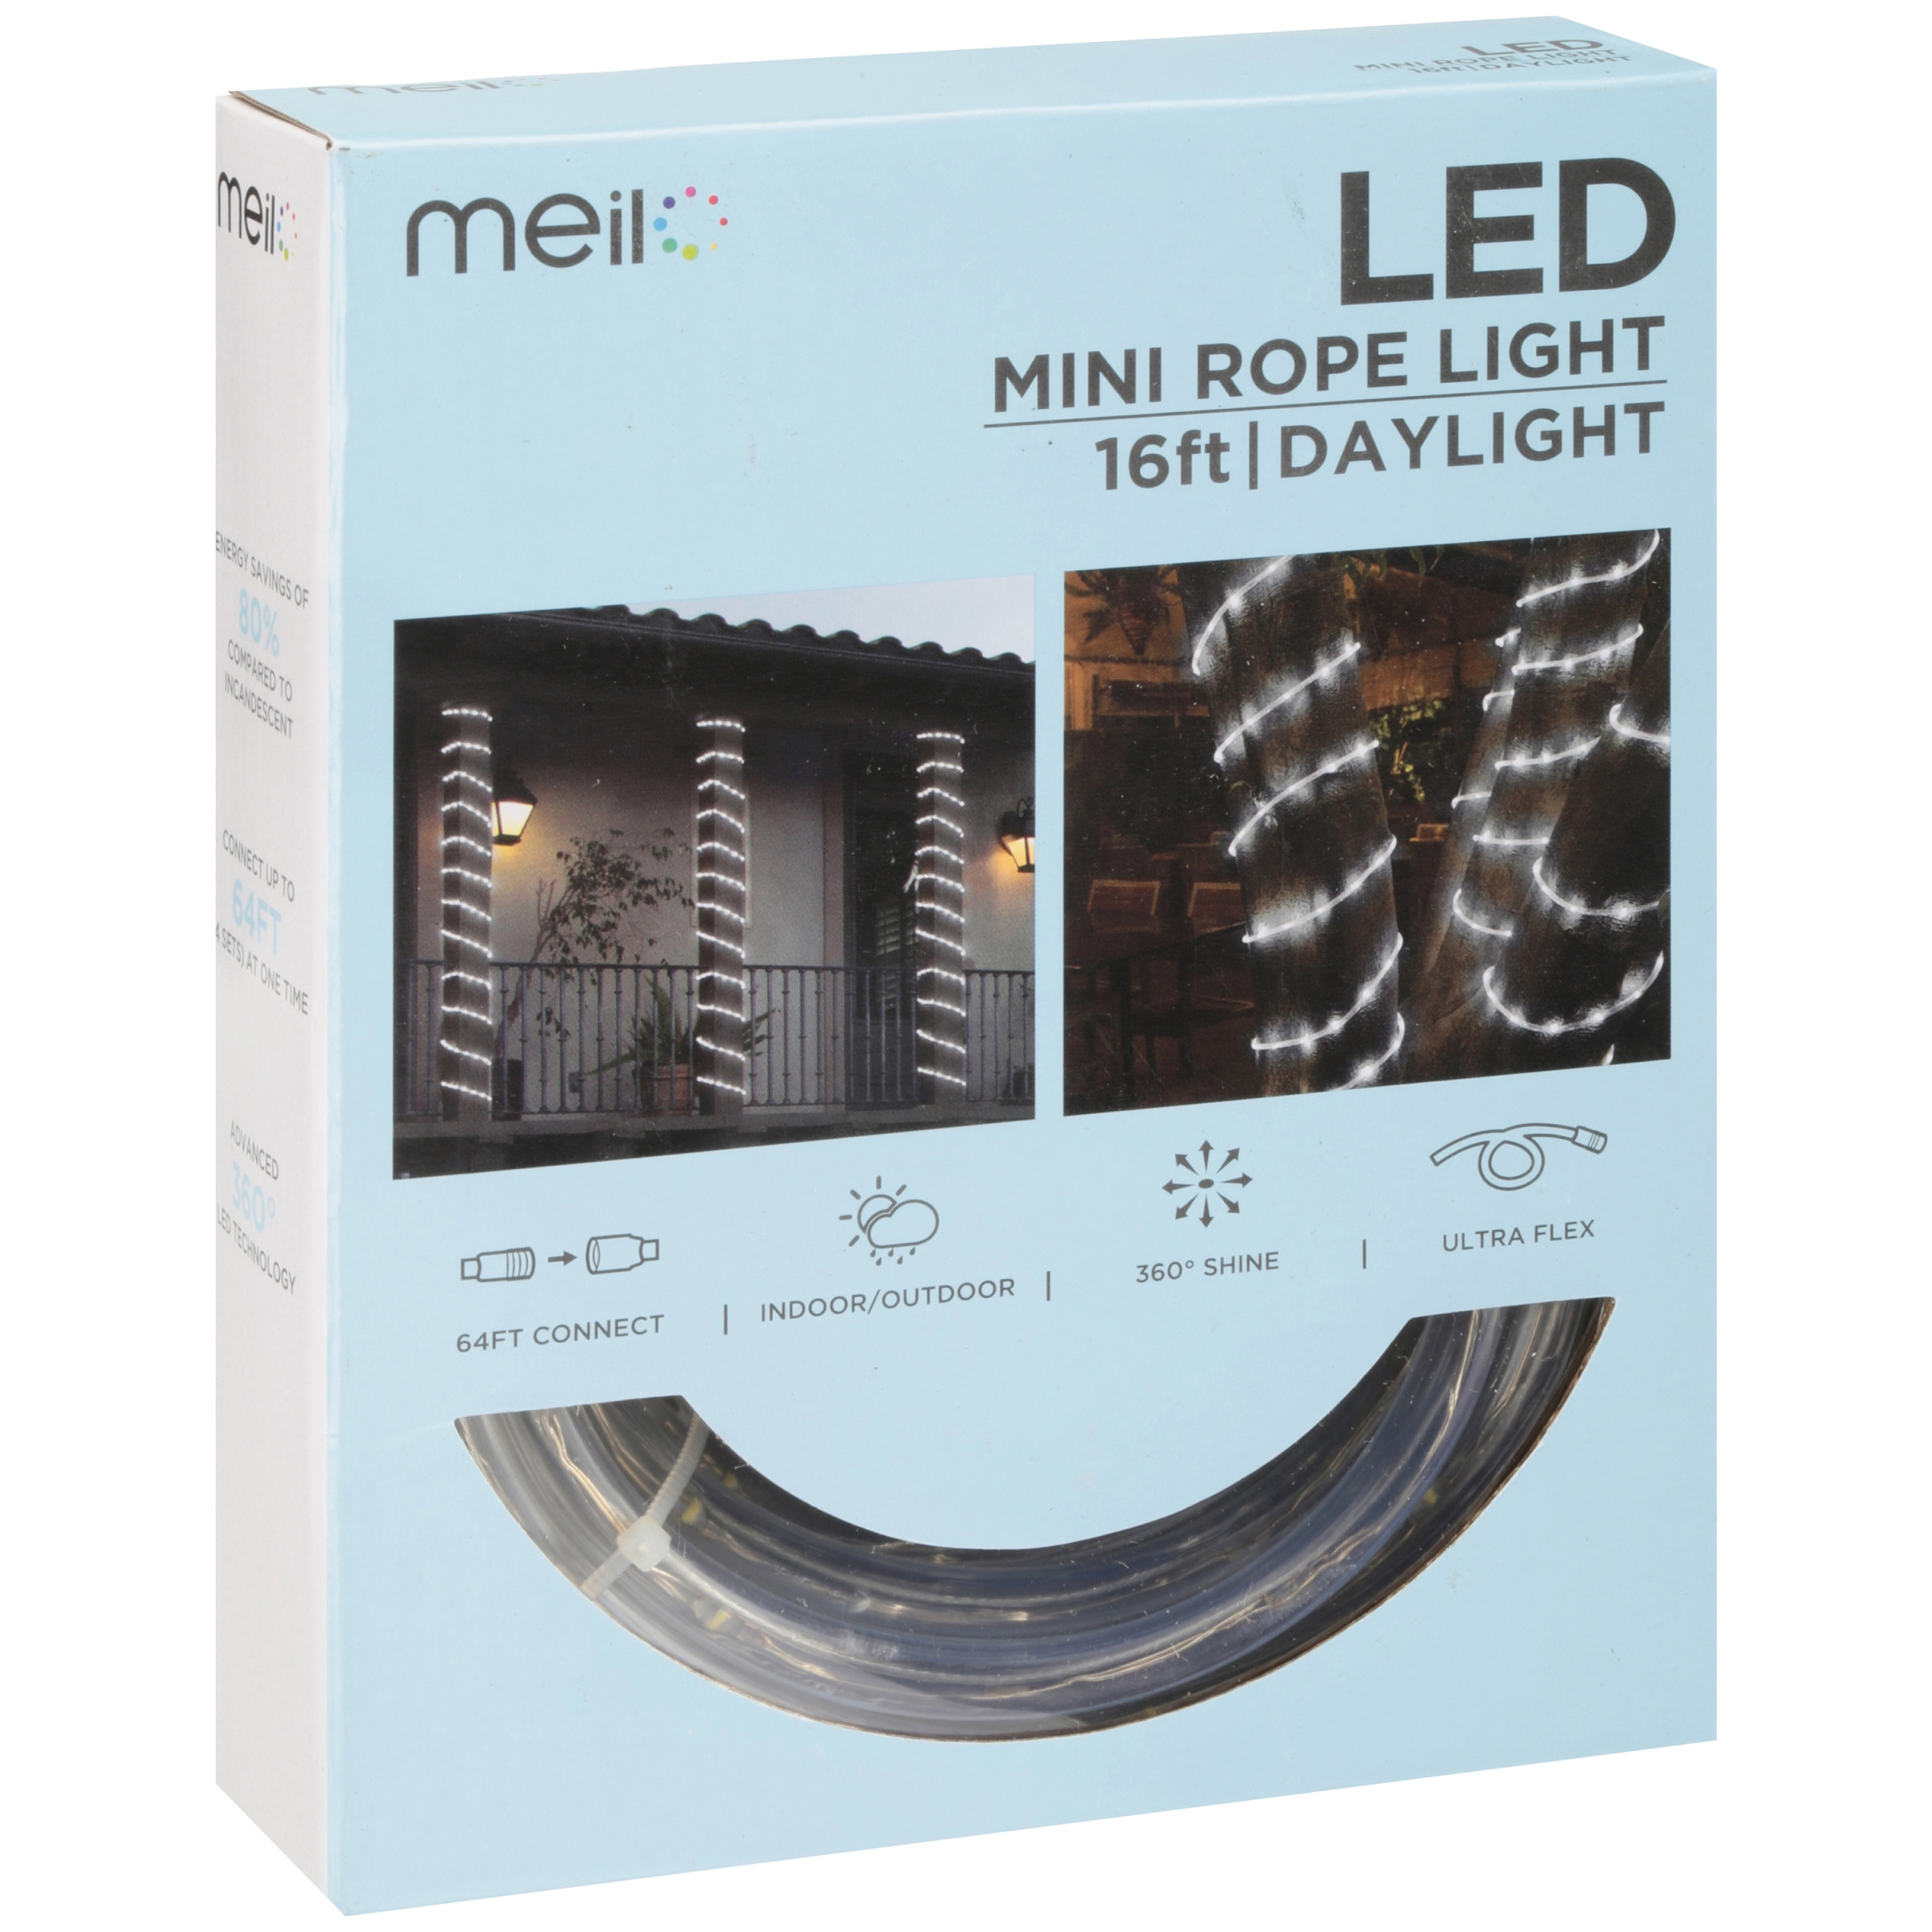 Meil led mini rope light 16 ft daylight walmart aloadofball Images